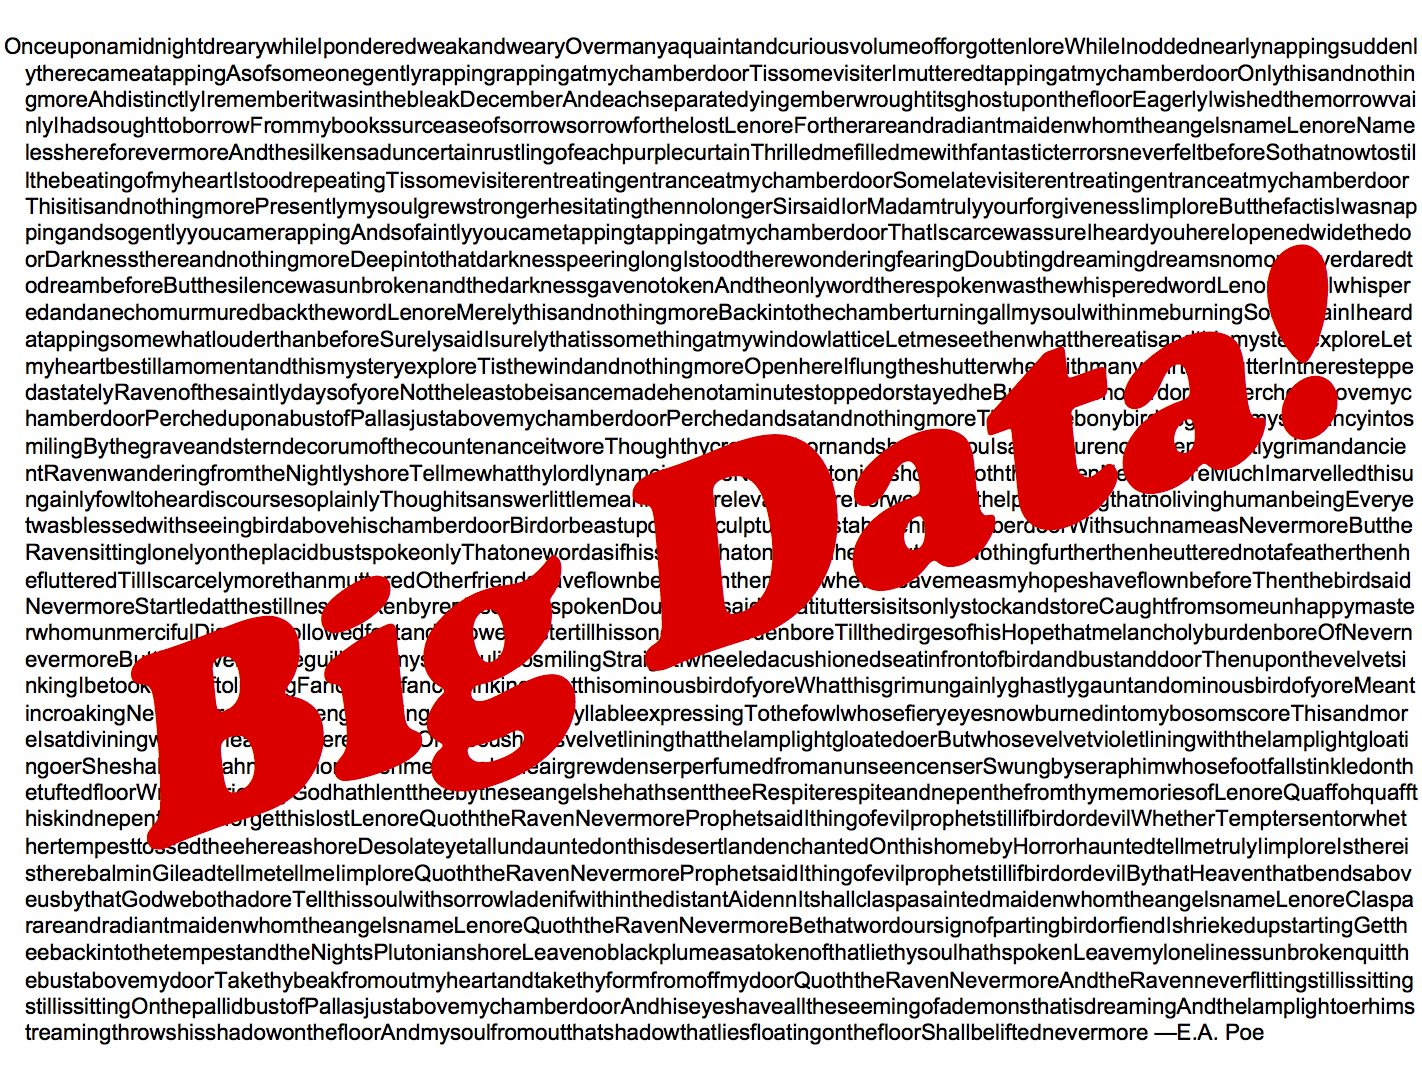 "@JamesMarsh101 ""Big Data"" doesn't equal ""usable data"" #GuildChat https://t.co/2GpA9cutLq"